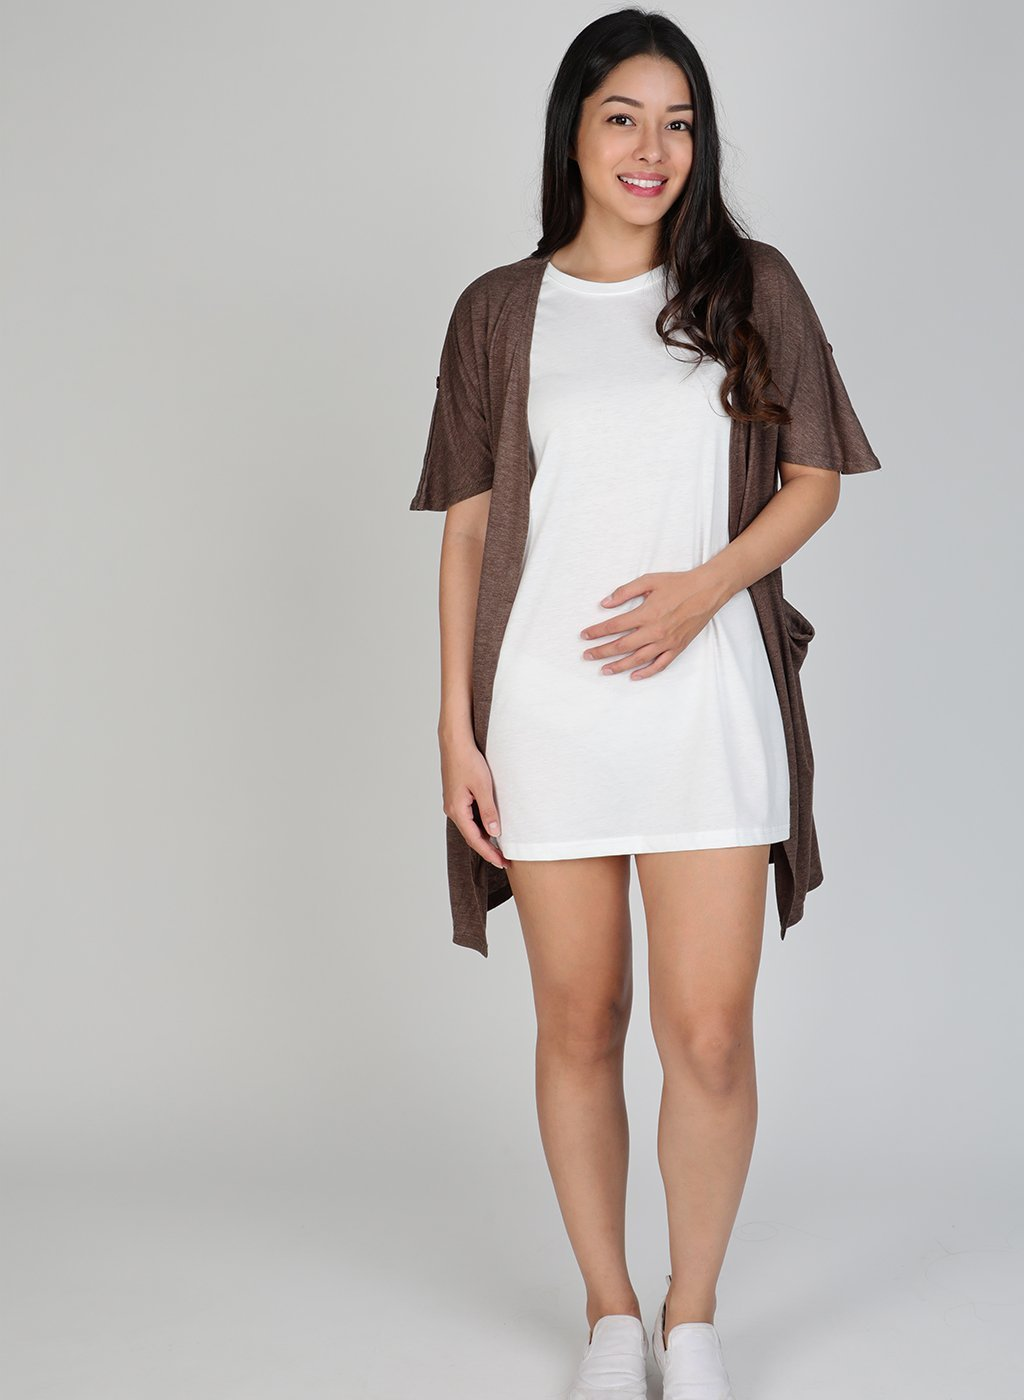 Lovemere Aria Latte Dress, best nursing dresses, maternity wear dresses, buy maternity dress, maternity occasion wear, stretchy maternity dress, maternity business clothes, pregnancy work clothes, maternity work outfits, maternity dress for working mom, maternity dress clothes for work, professional maternity clothes